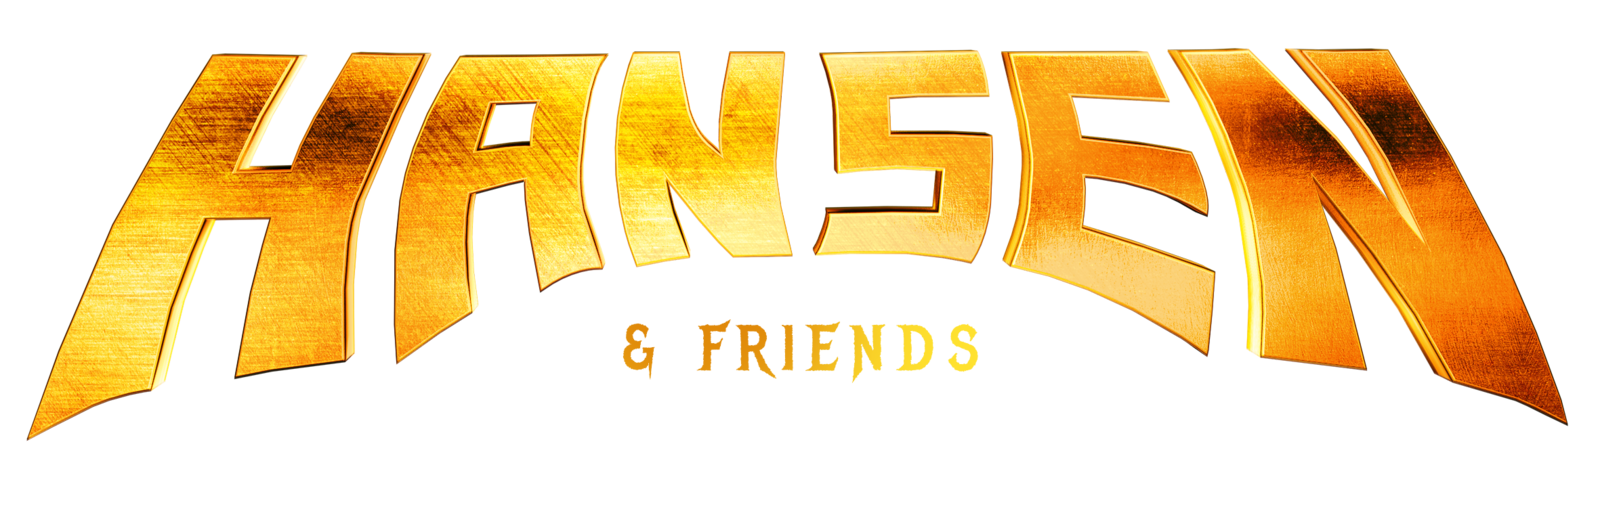 New video and more details of HANSEN & FRIENDS